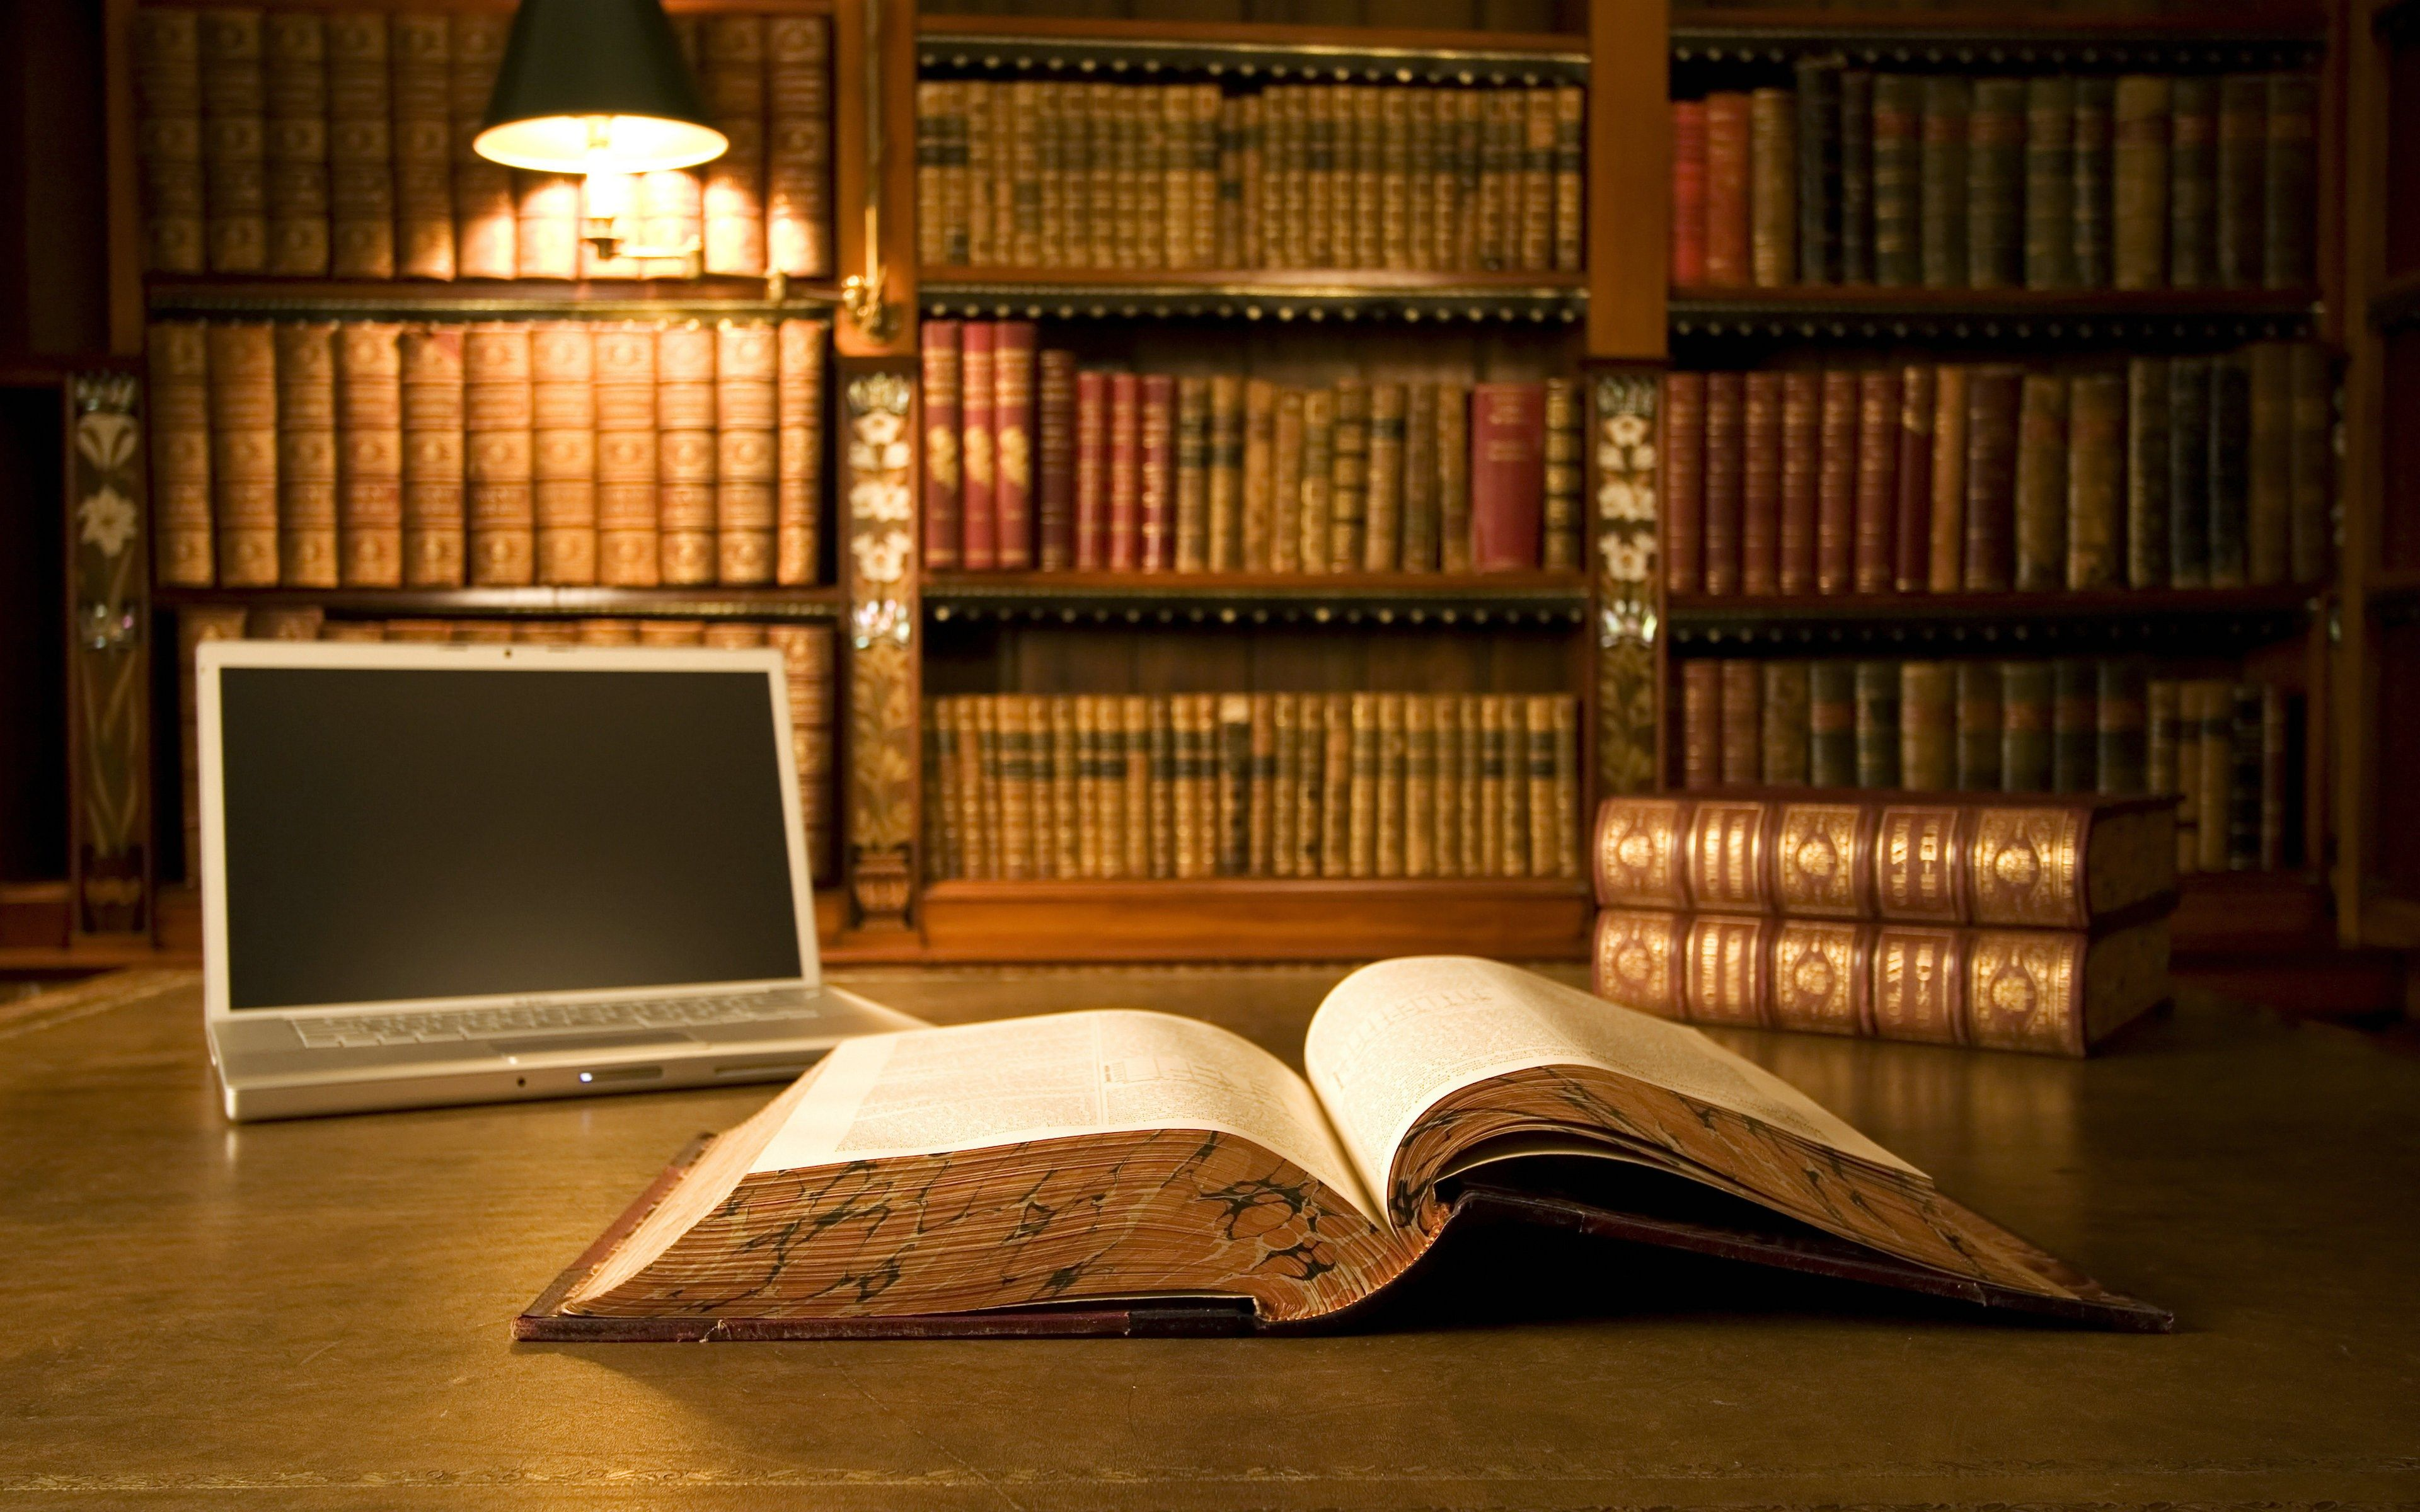 Hd Books Wallpaper Backgrounds Law School Library Science